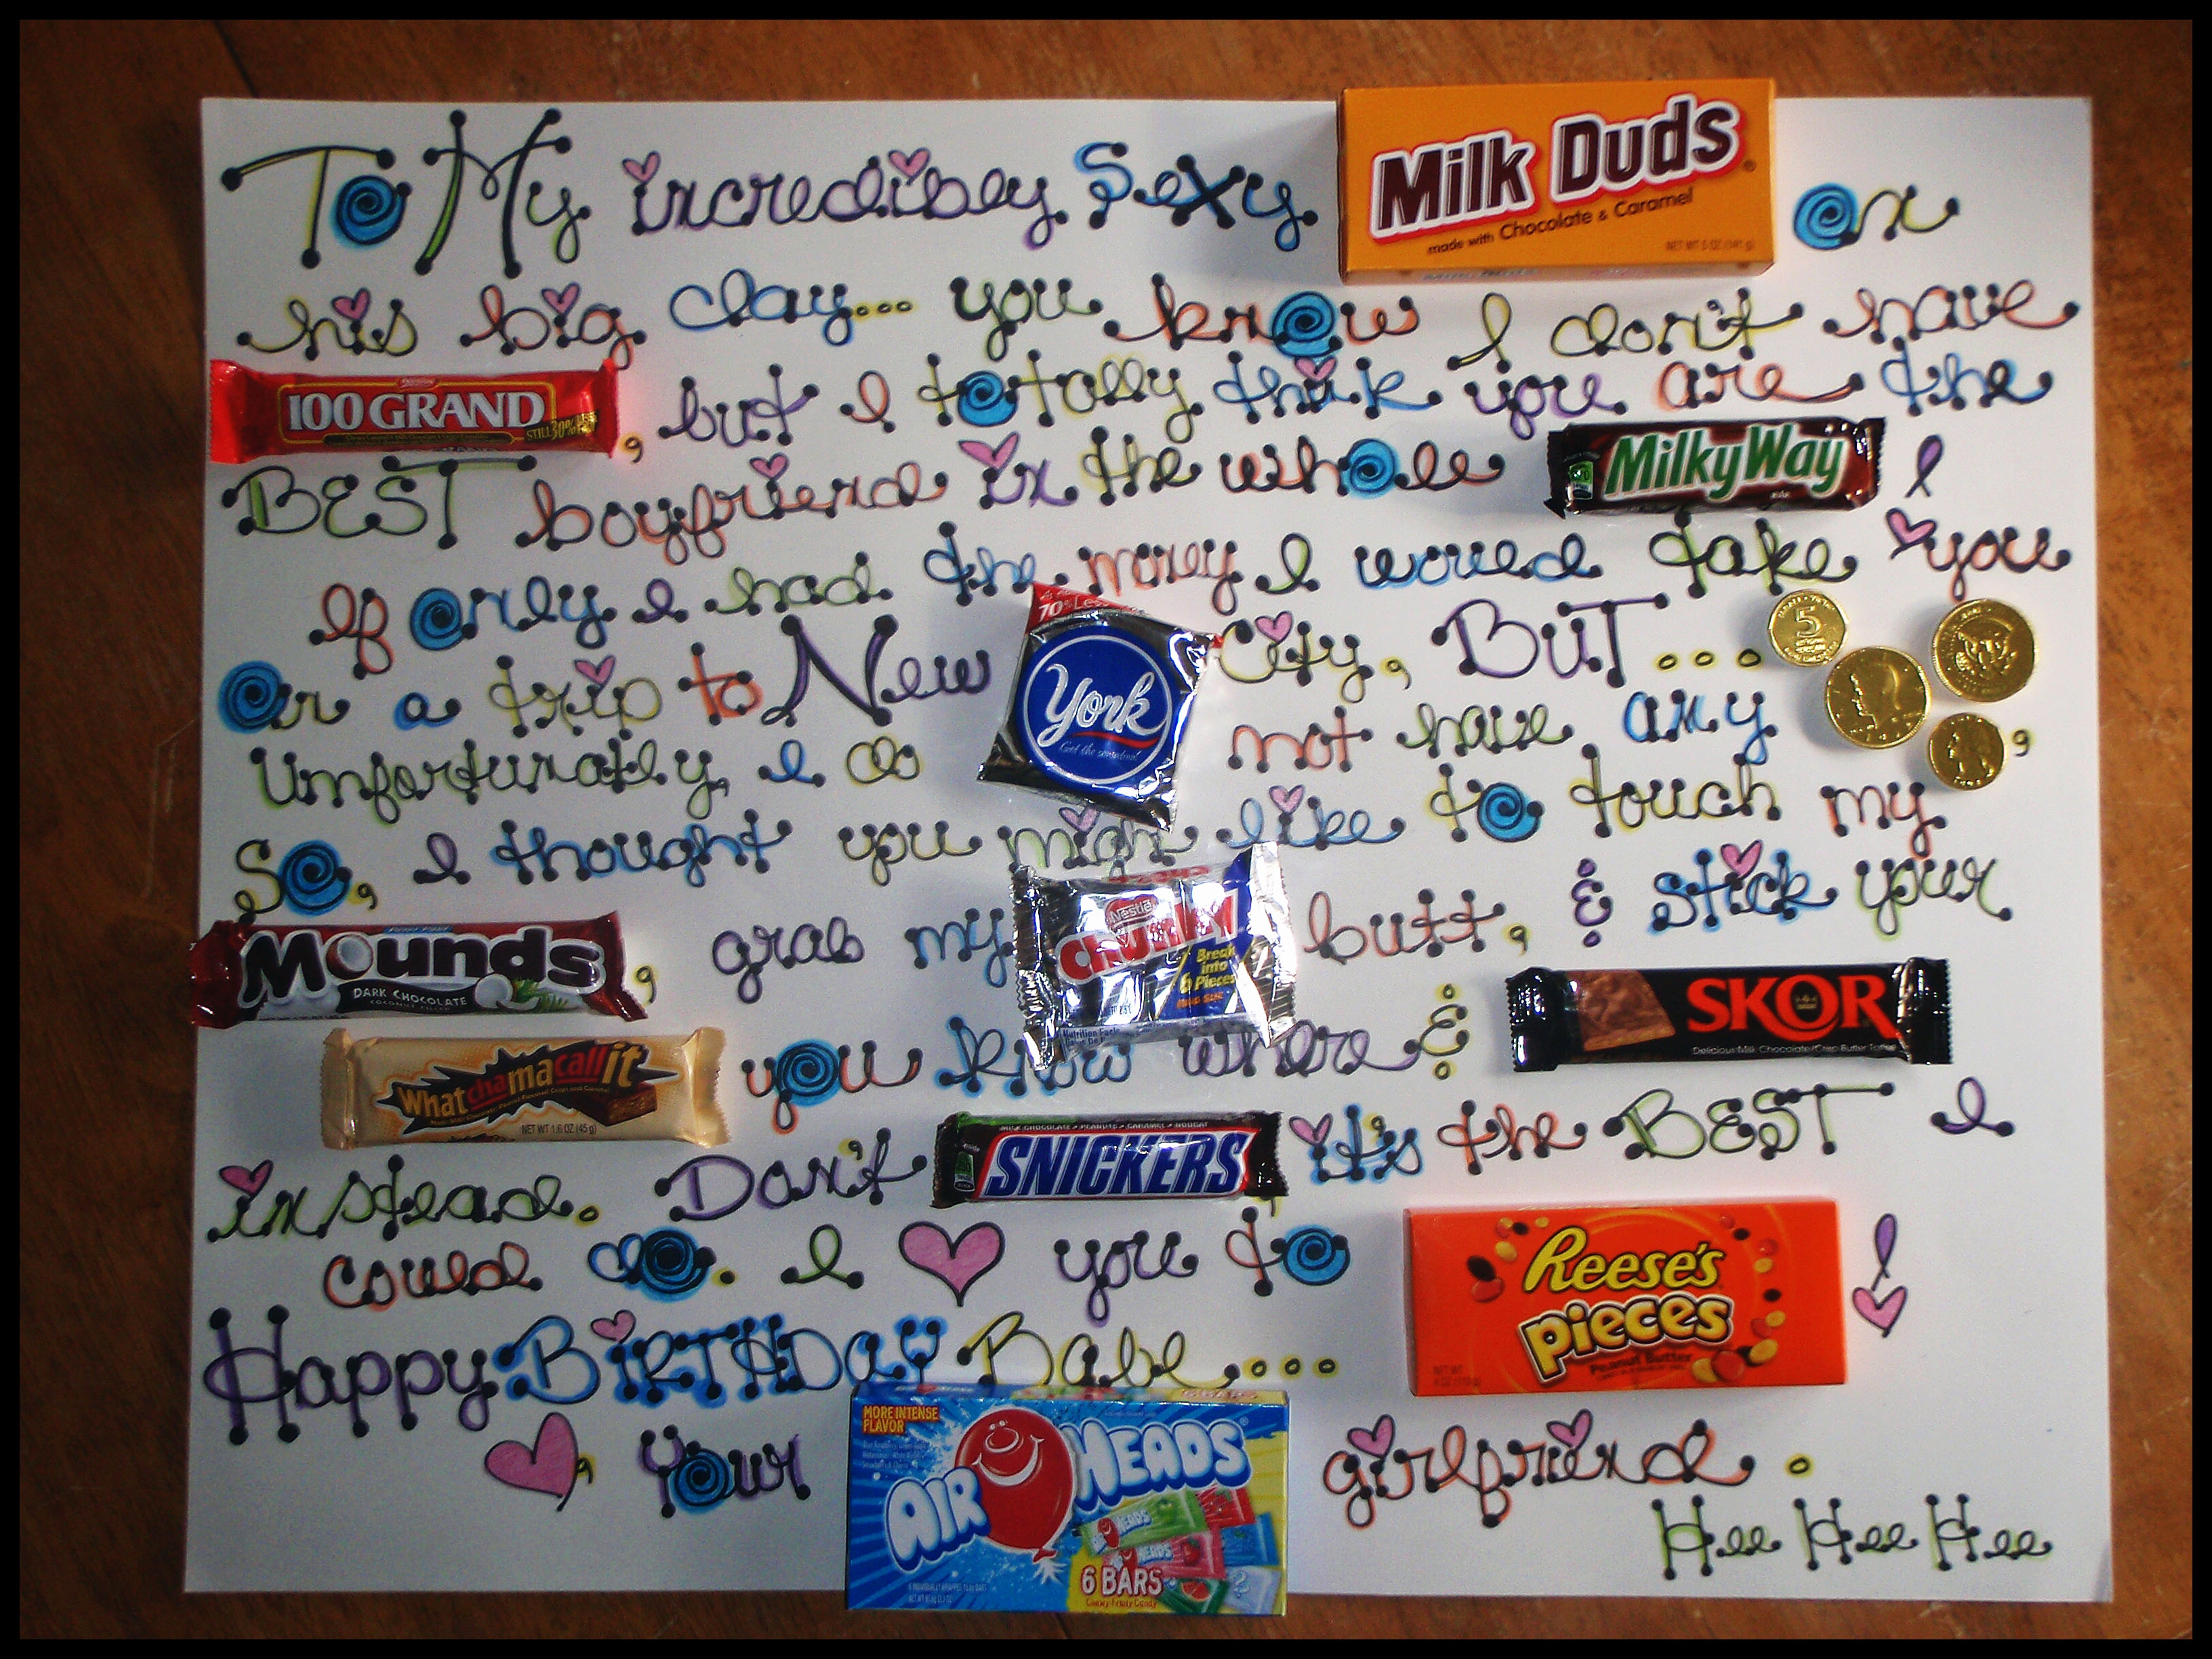 candy bar birthday card sayings ; 30th-birthday-card-messages-awesome-candy-bar-birthday-card-sayings-awesome-how-cute-is-this-candy-bar-of-30th-birthday-card-messages